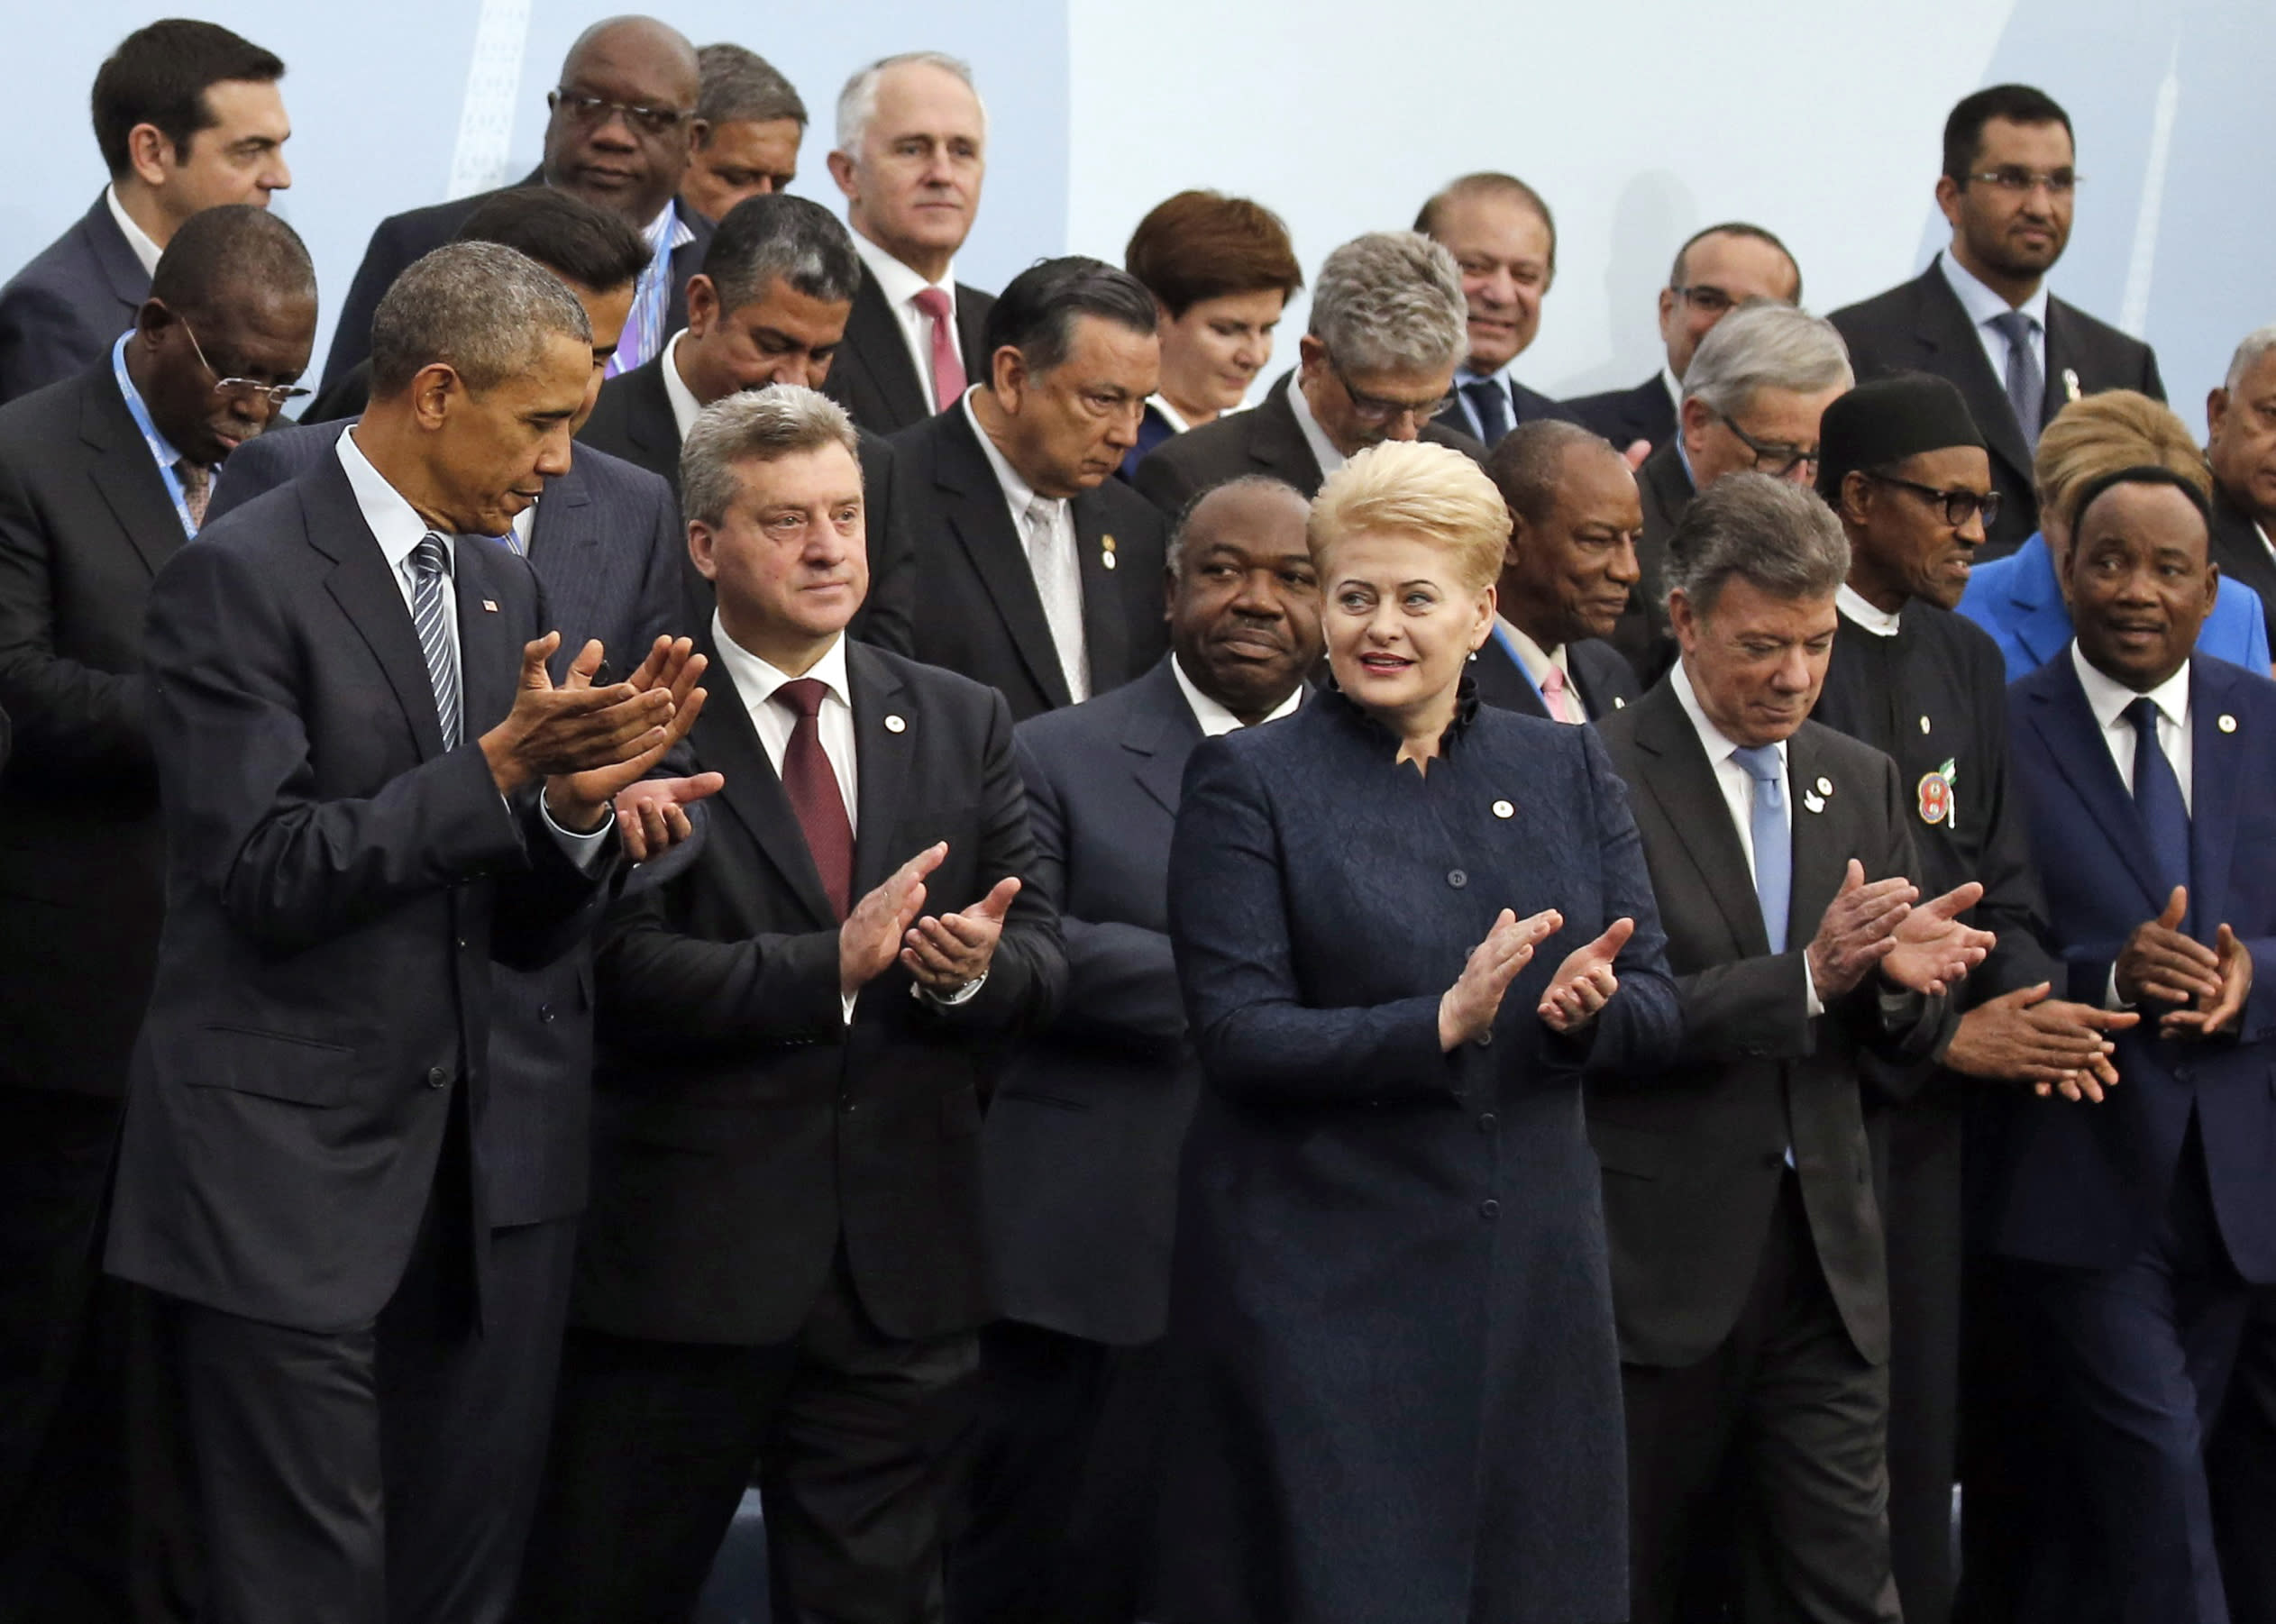 Leaders of warming Earth meet in Paris to cut emissions